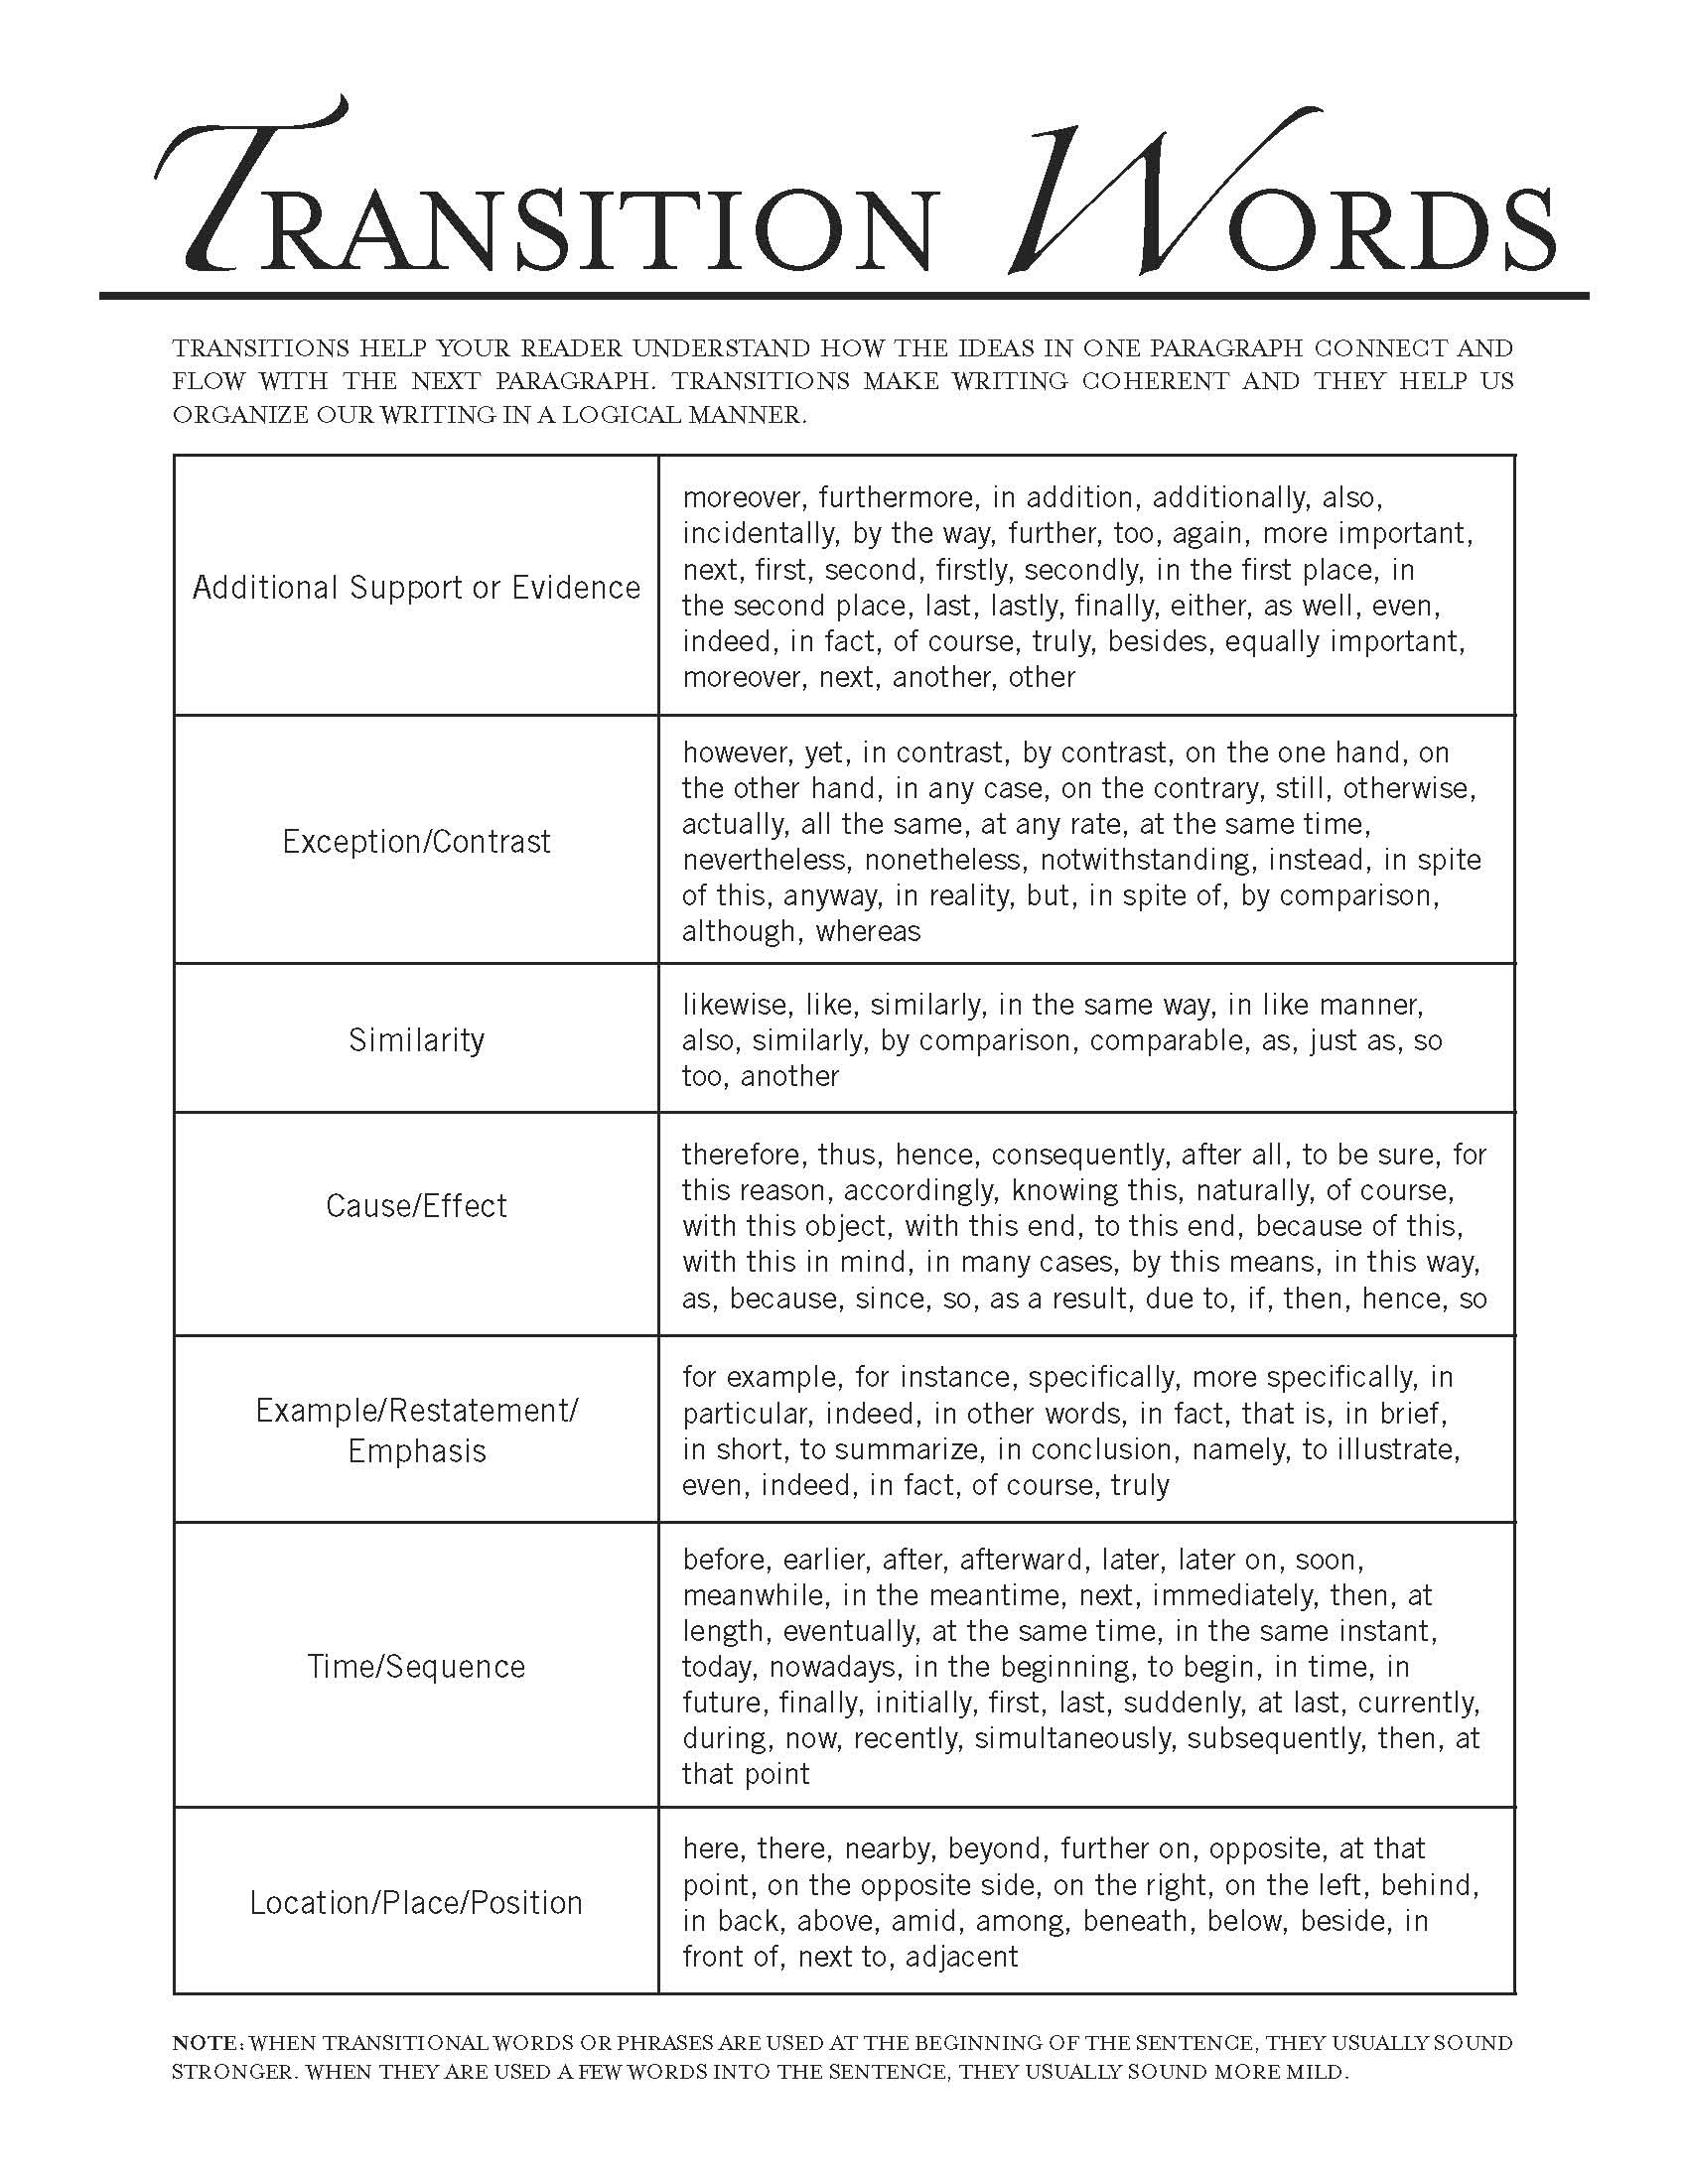 Worksheets Transition Words Worksheet transition words in an essay okl mindsprout co transition